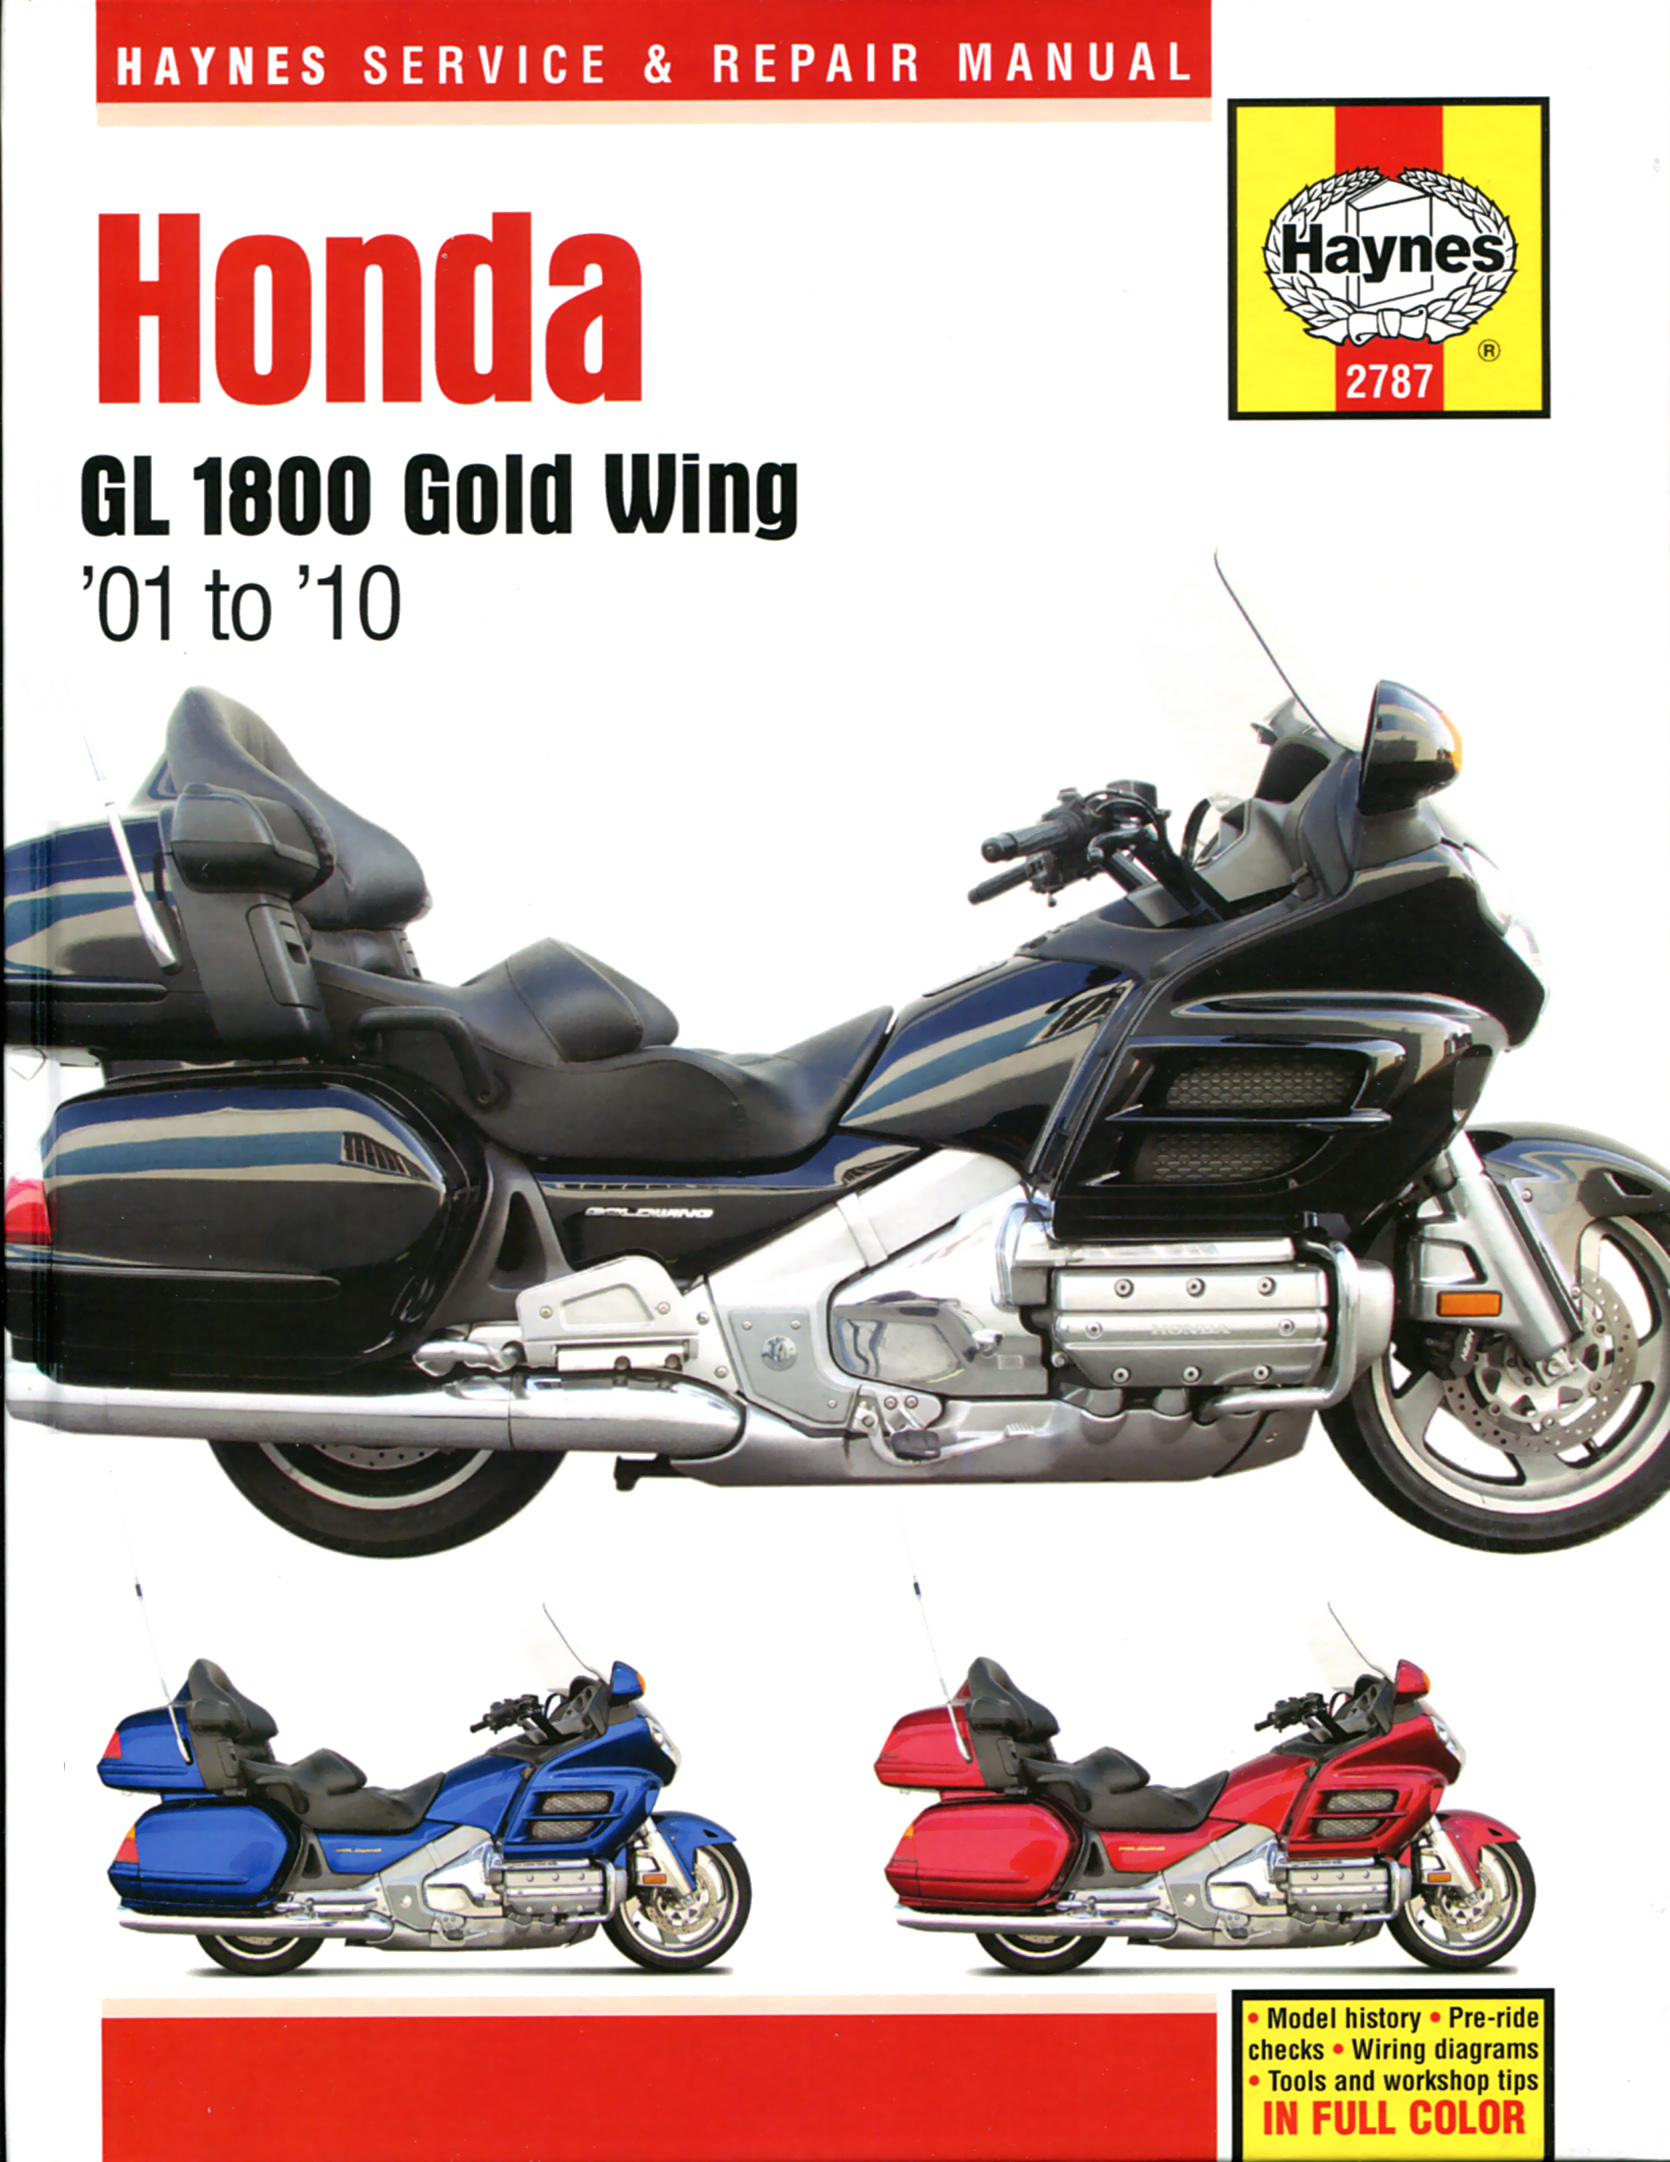 Sapiensman Haynes Manuals Wiring Diagram Honda H100 Gl1800 Gold Wing 1800 01 10 Repair Manual